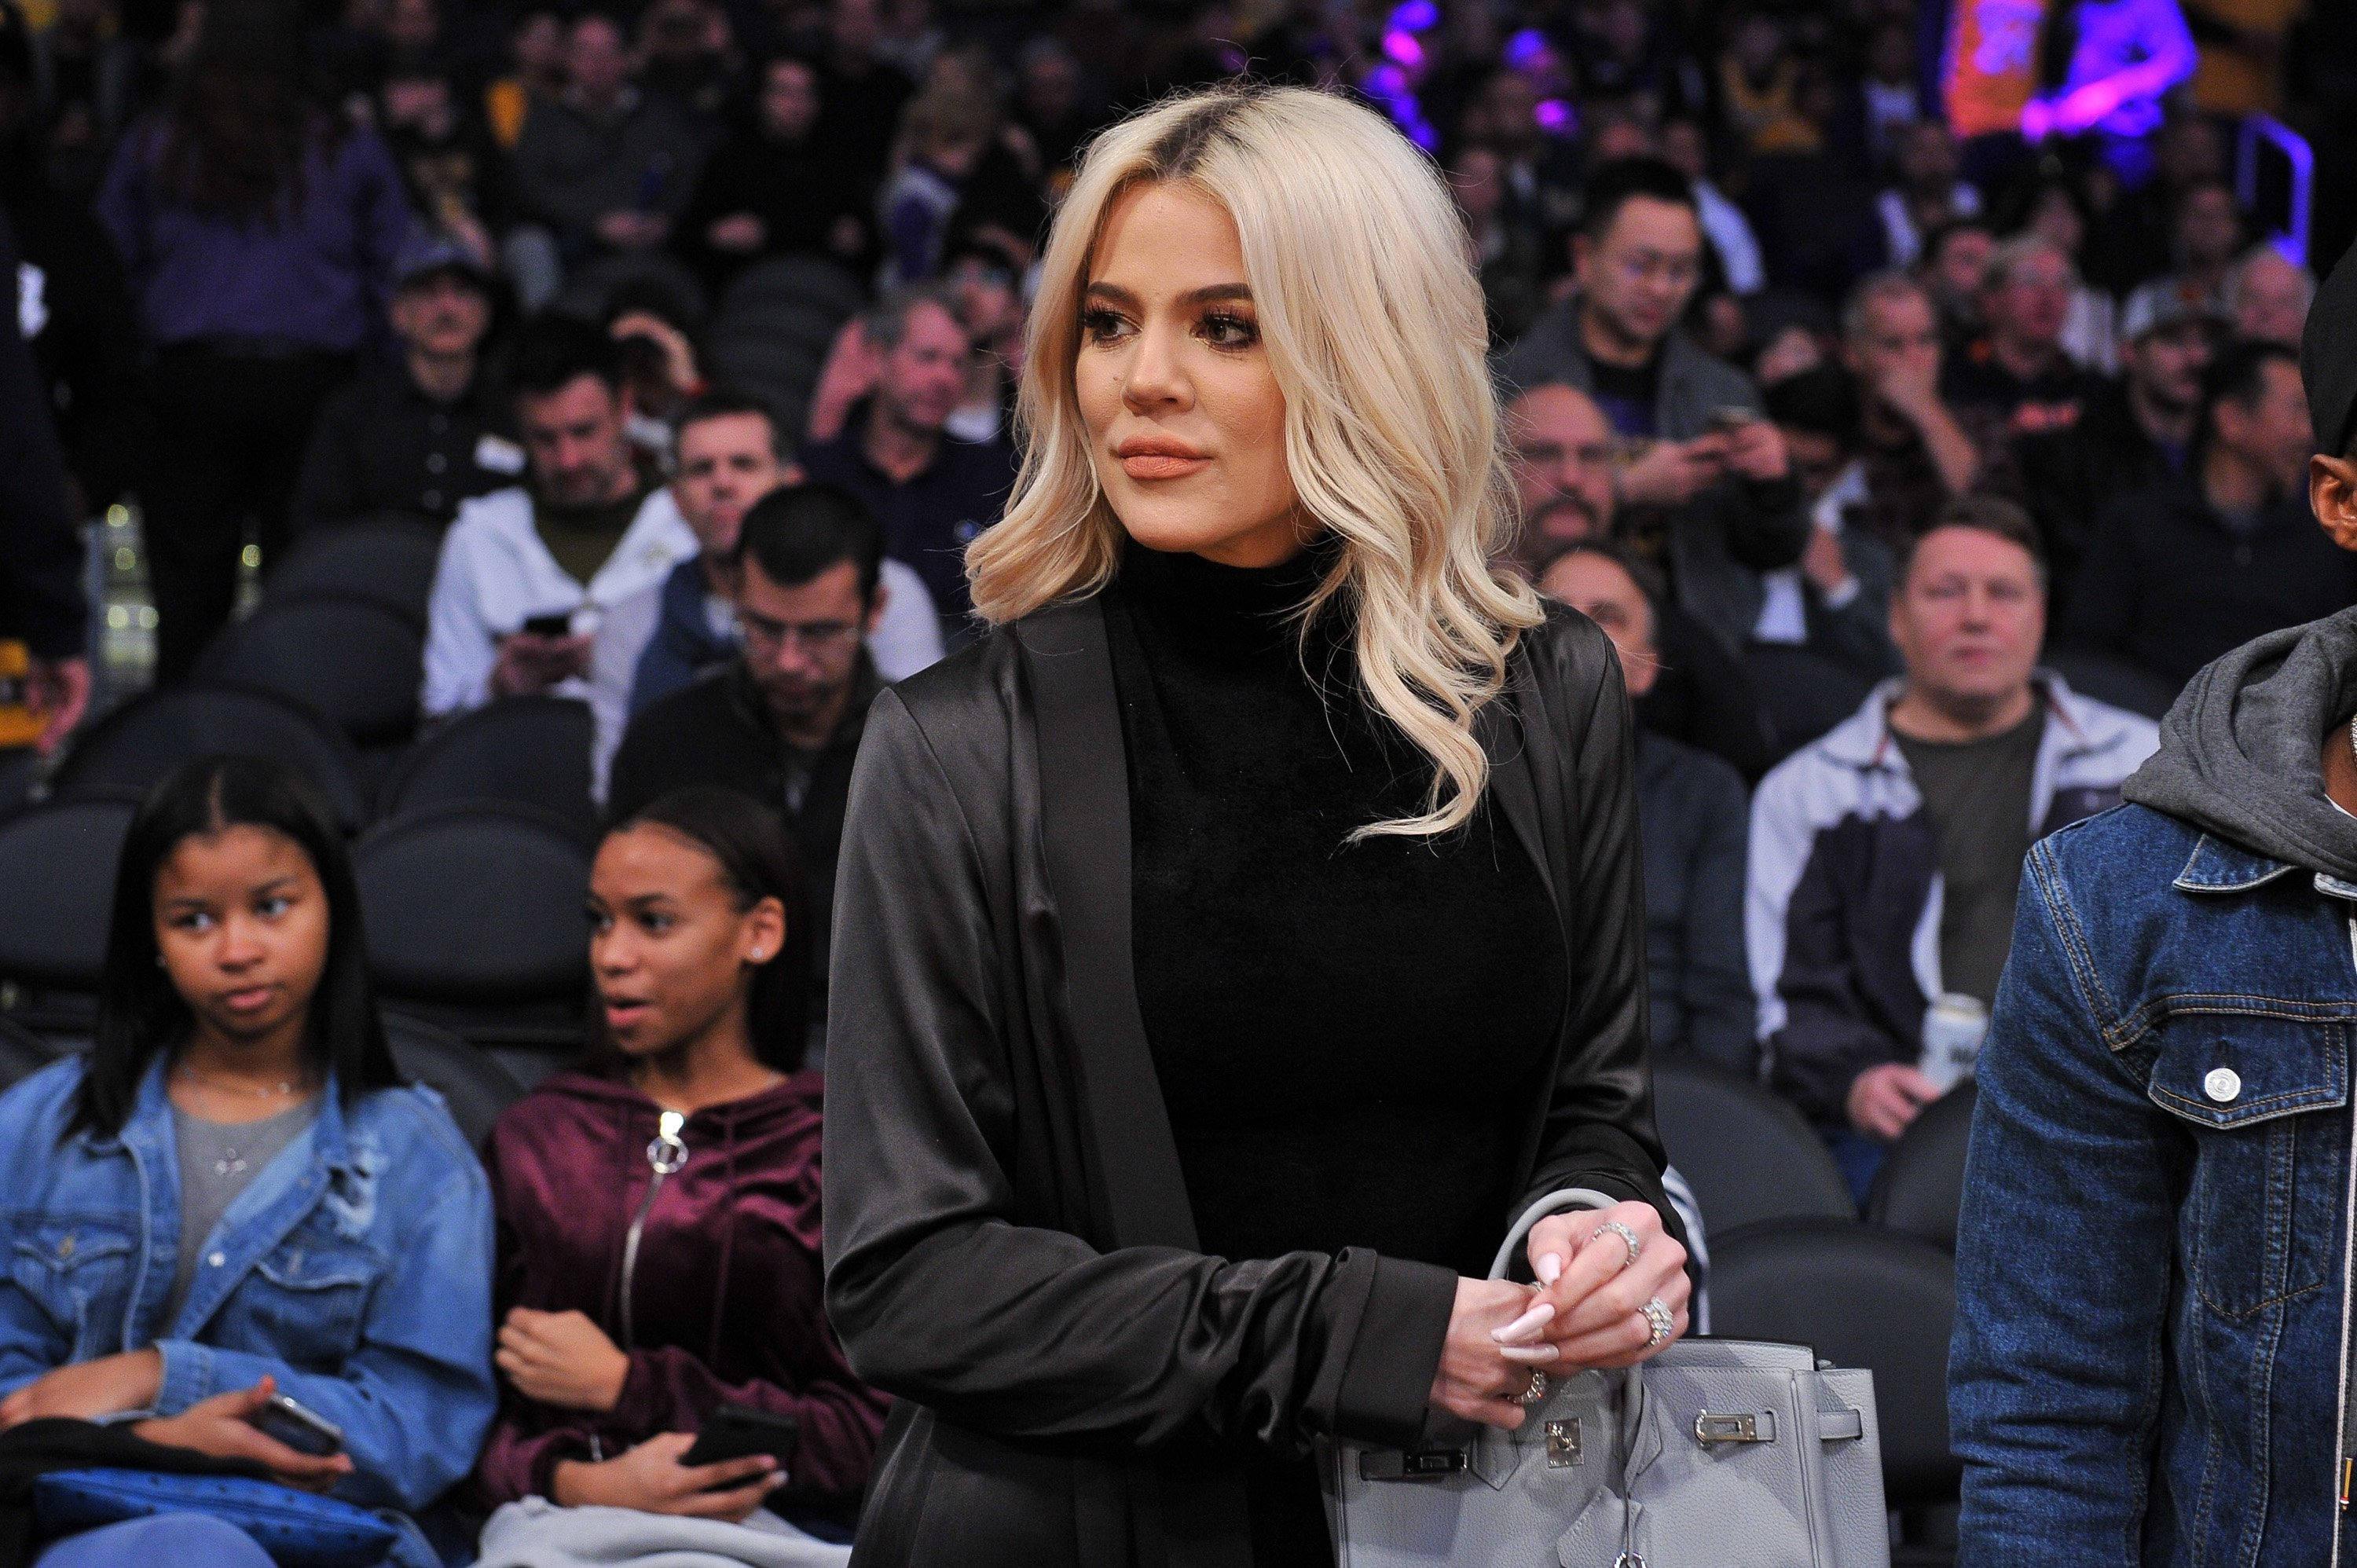 Khloe Kardashian at a basketball game between the Los Angeles Lakers and the Cleveland Cavaliers on January 13, 2019, in California. | Source: Getty Images